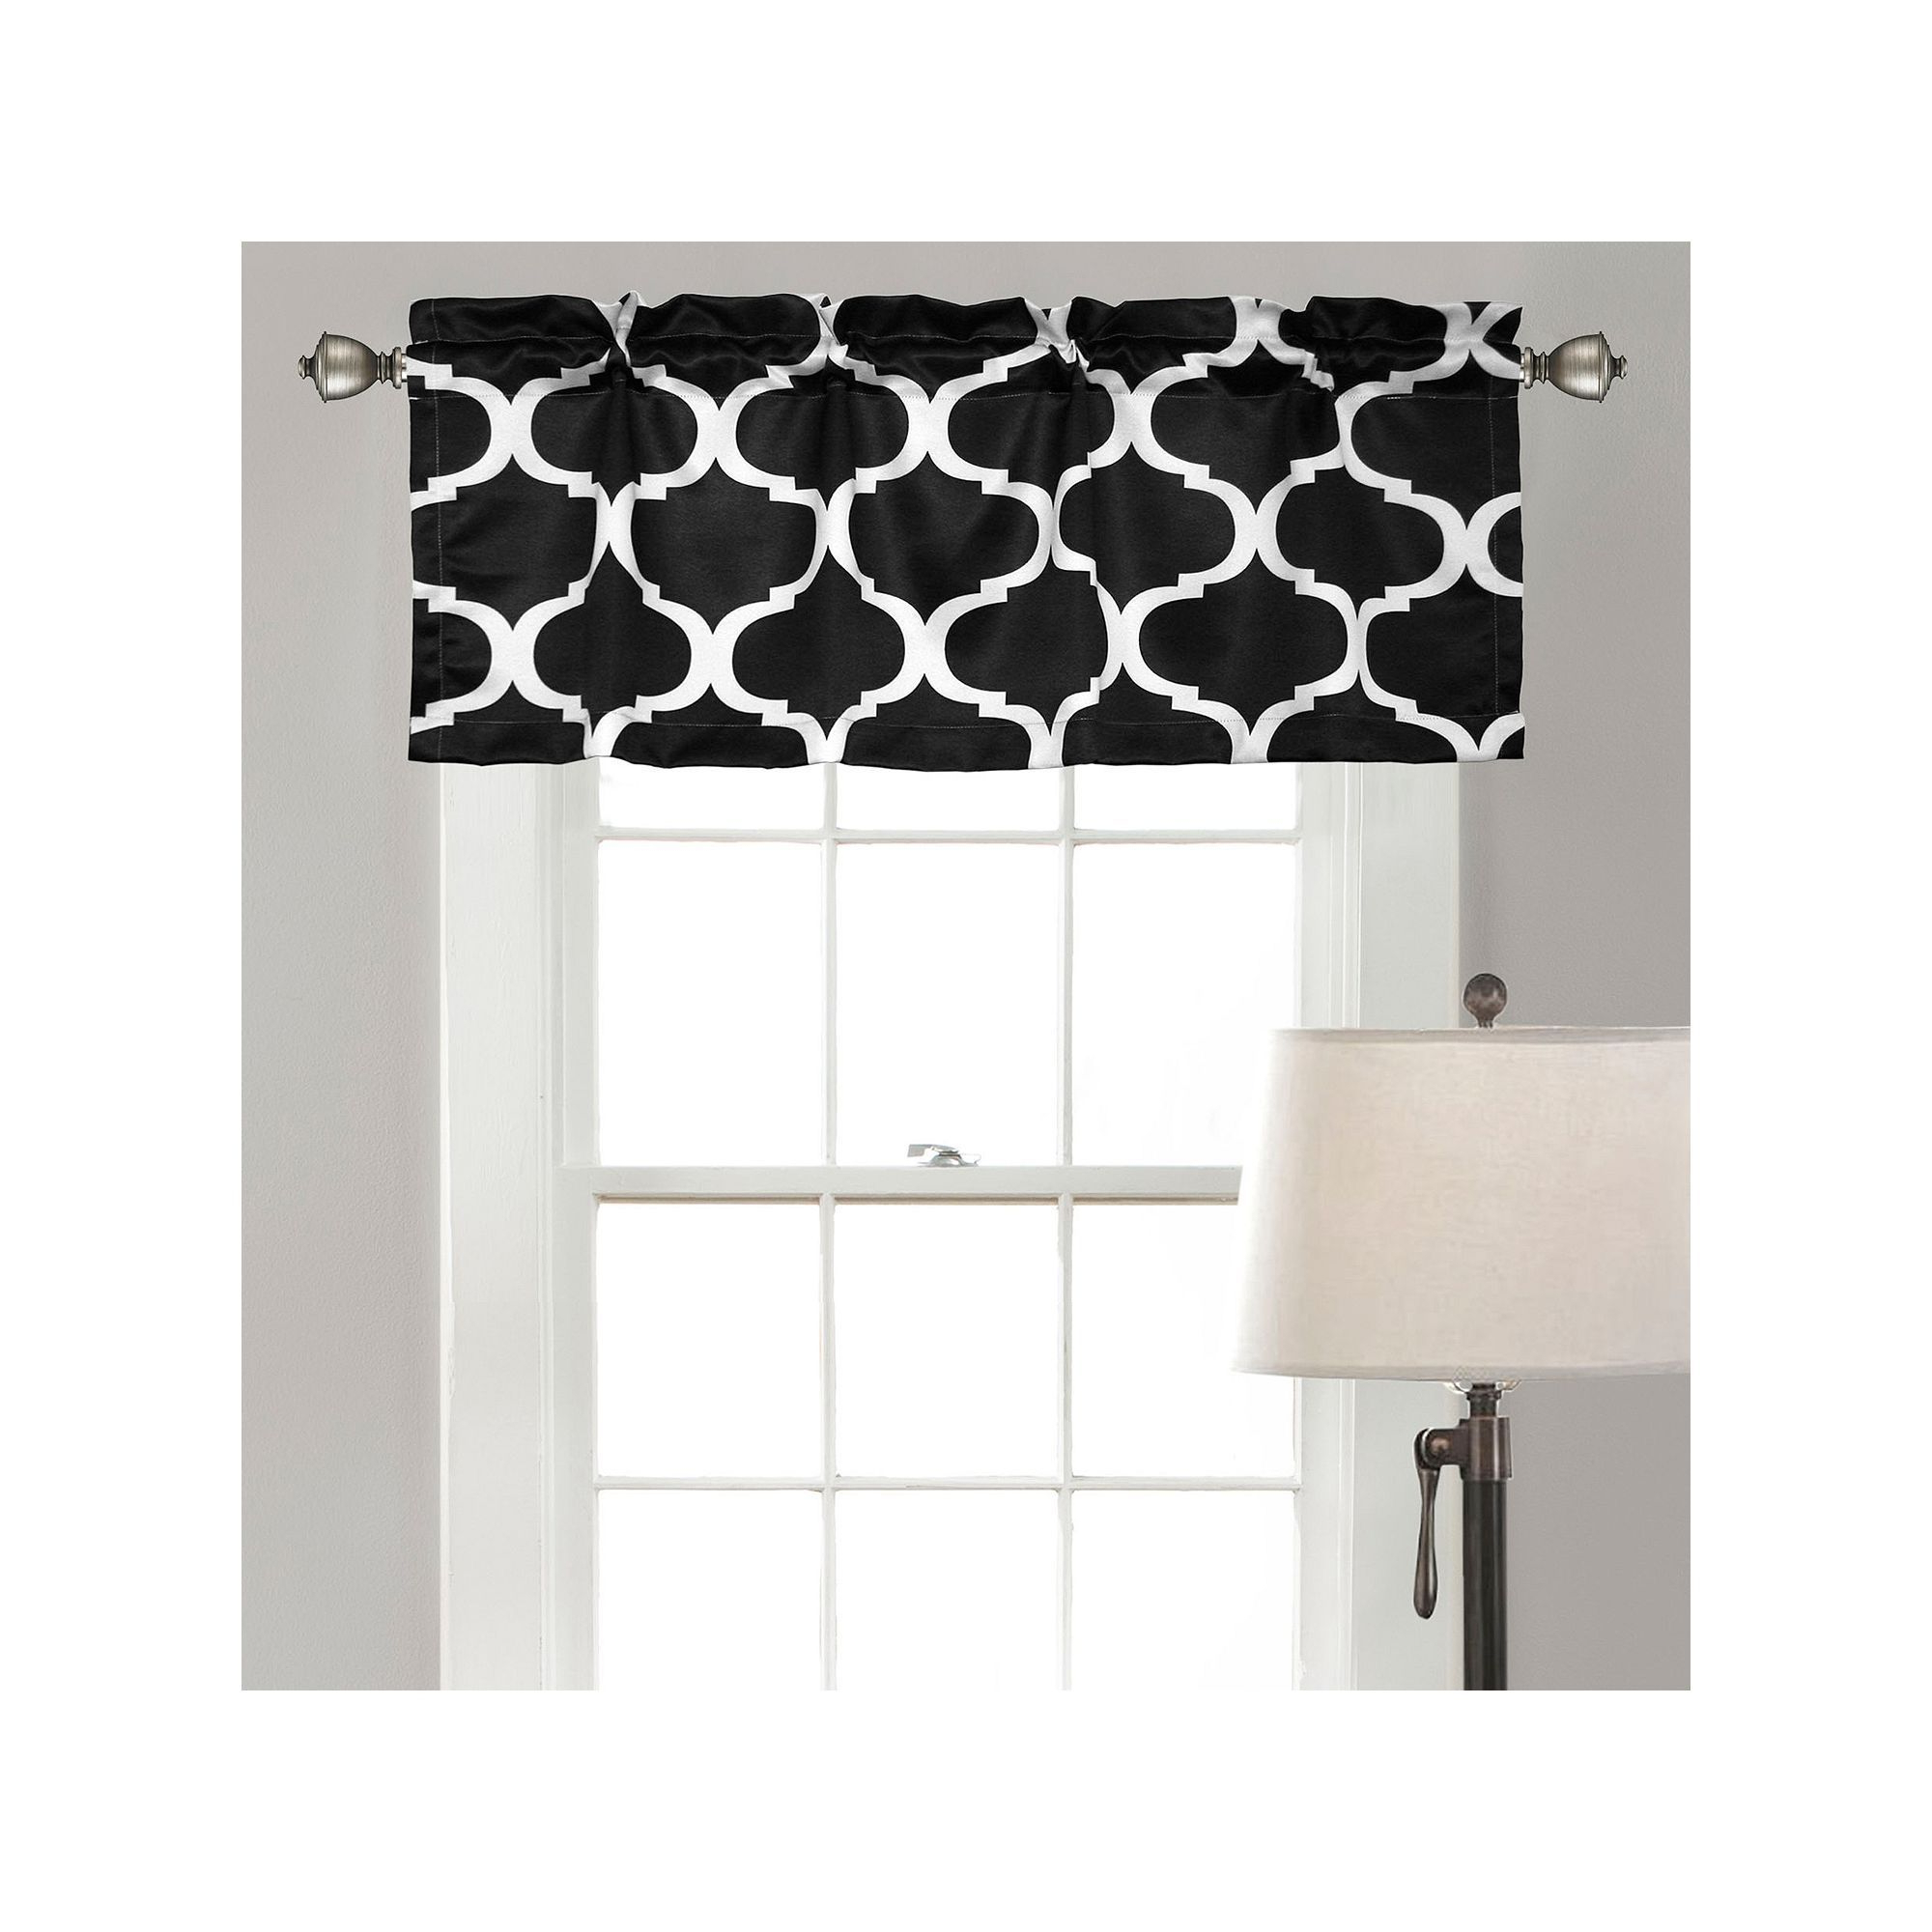 Widely Used Trellis Pattern Window Valances Regarding Pin On Products (View 12 of 20)